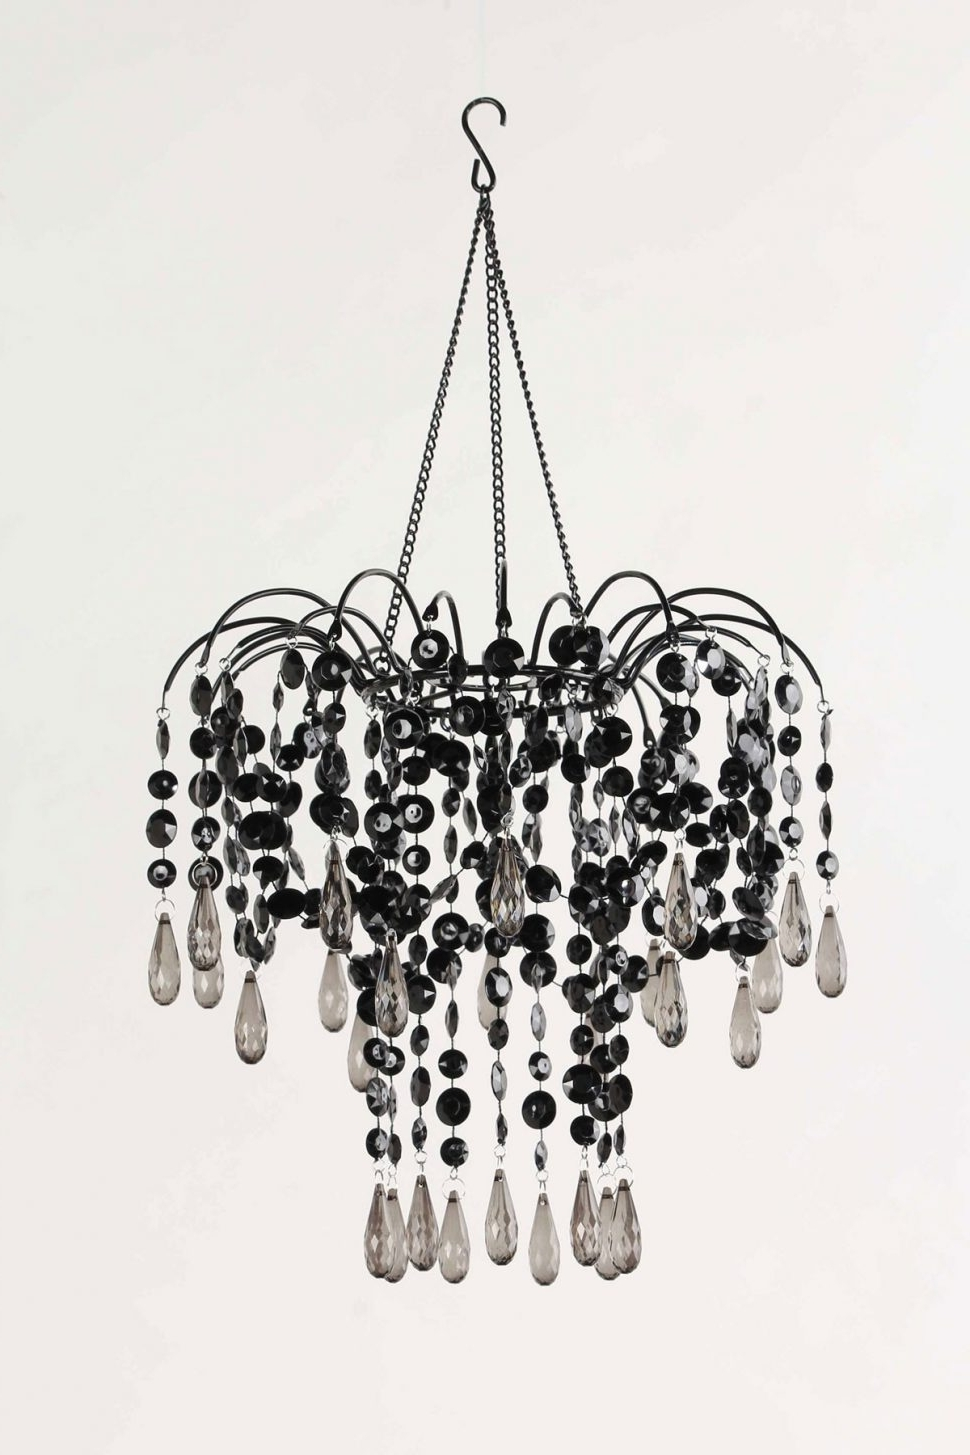 Popular Faux Crystal Chandeliers With Chandeliers : Faux Crystal Chandelier Up To Date Image Design (View 8 of 20)